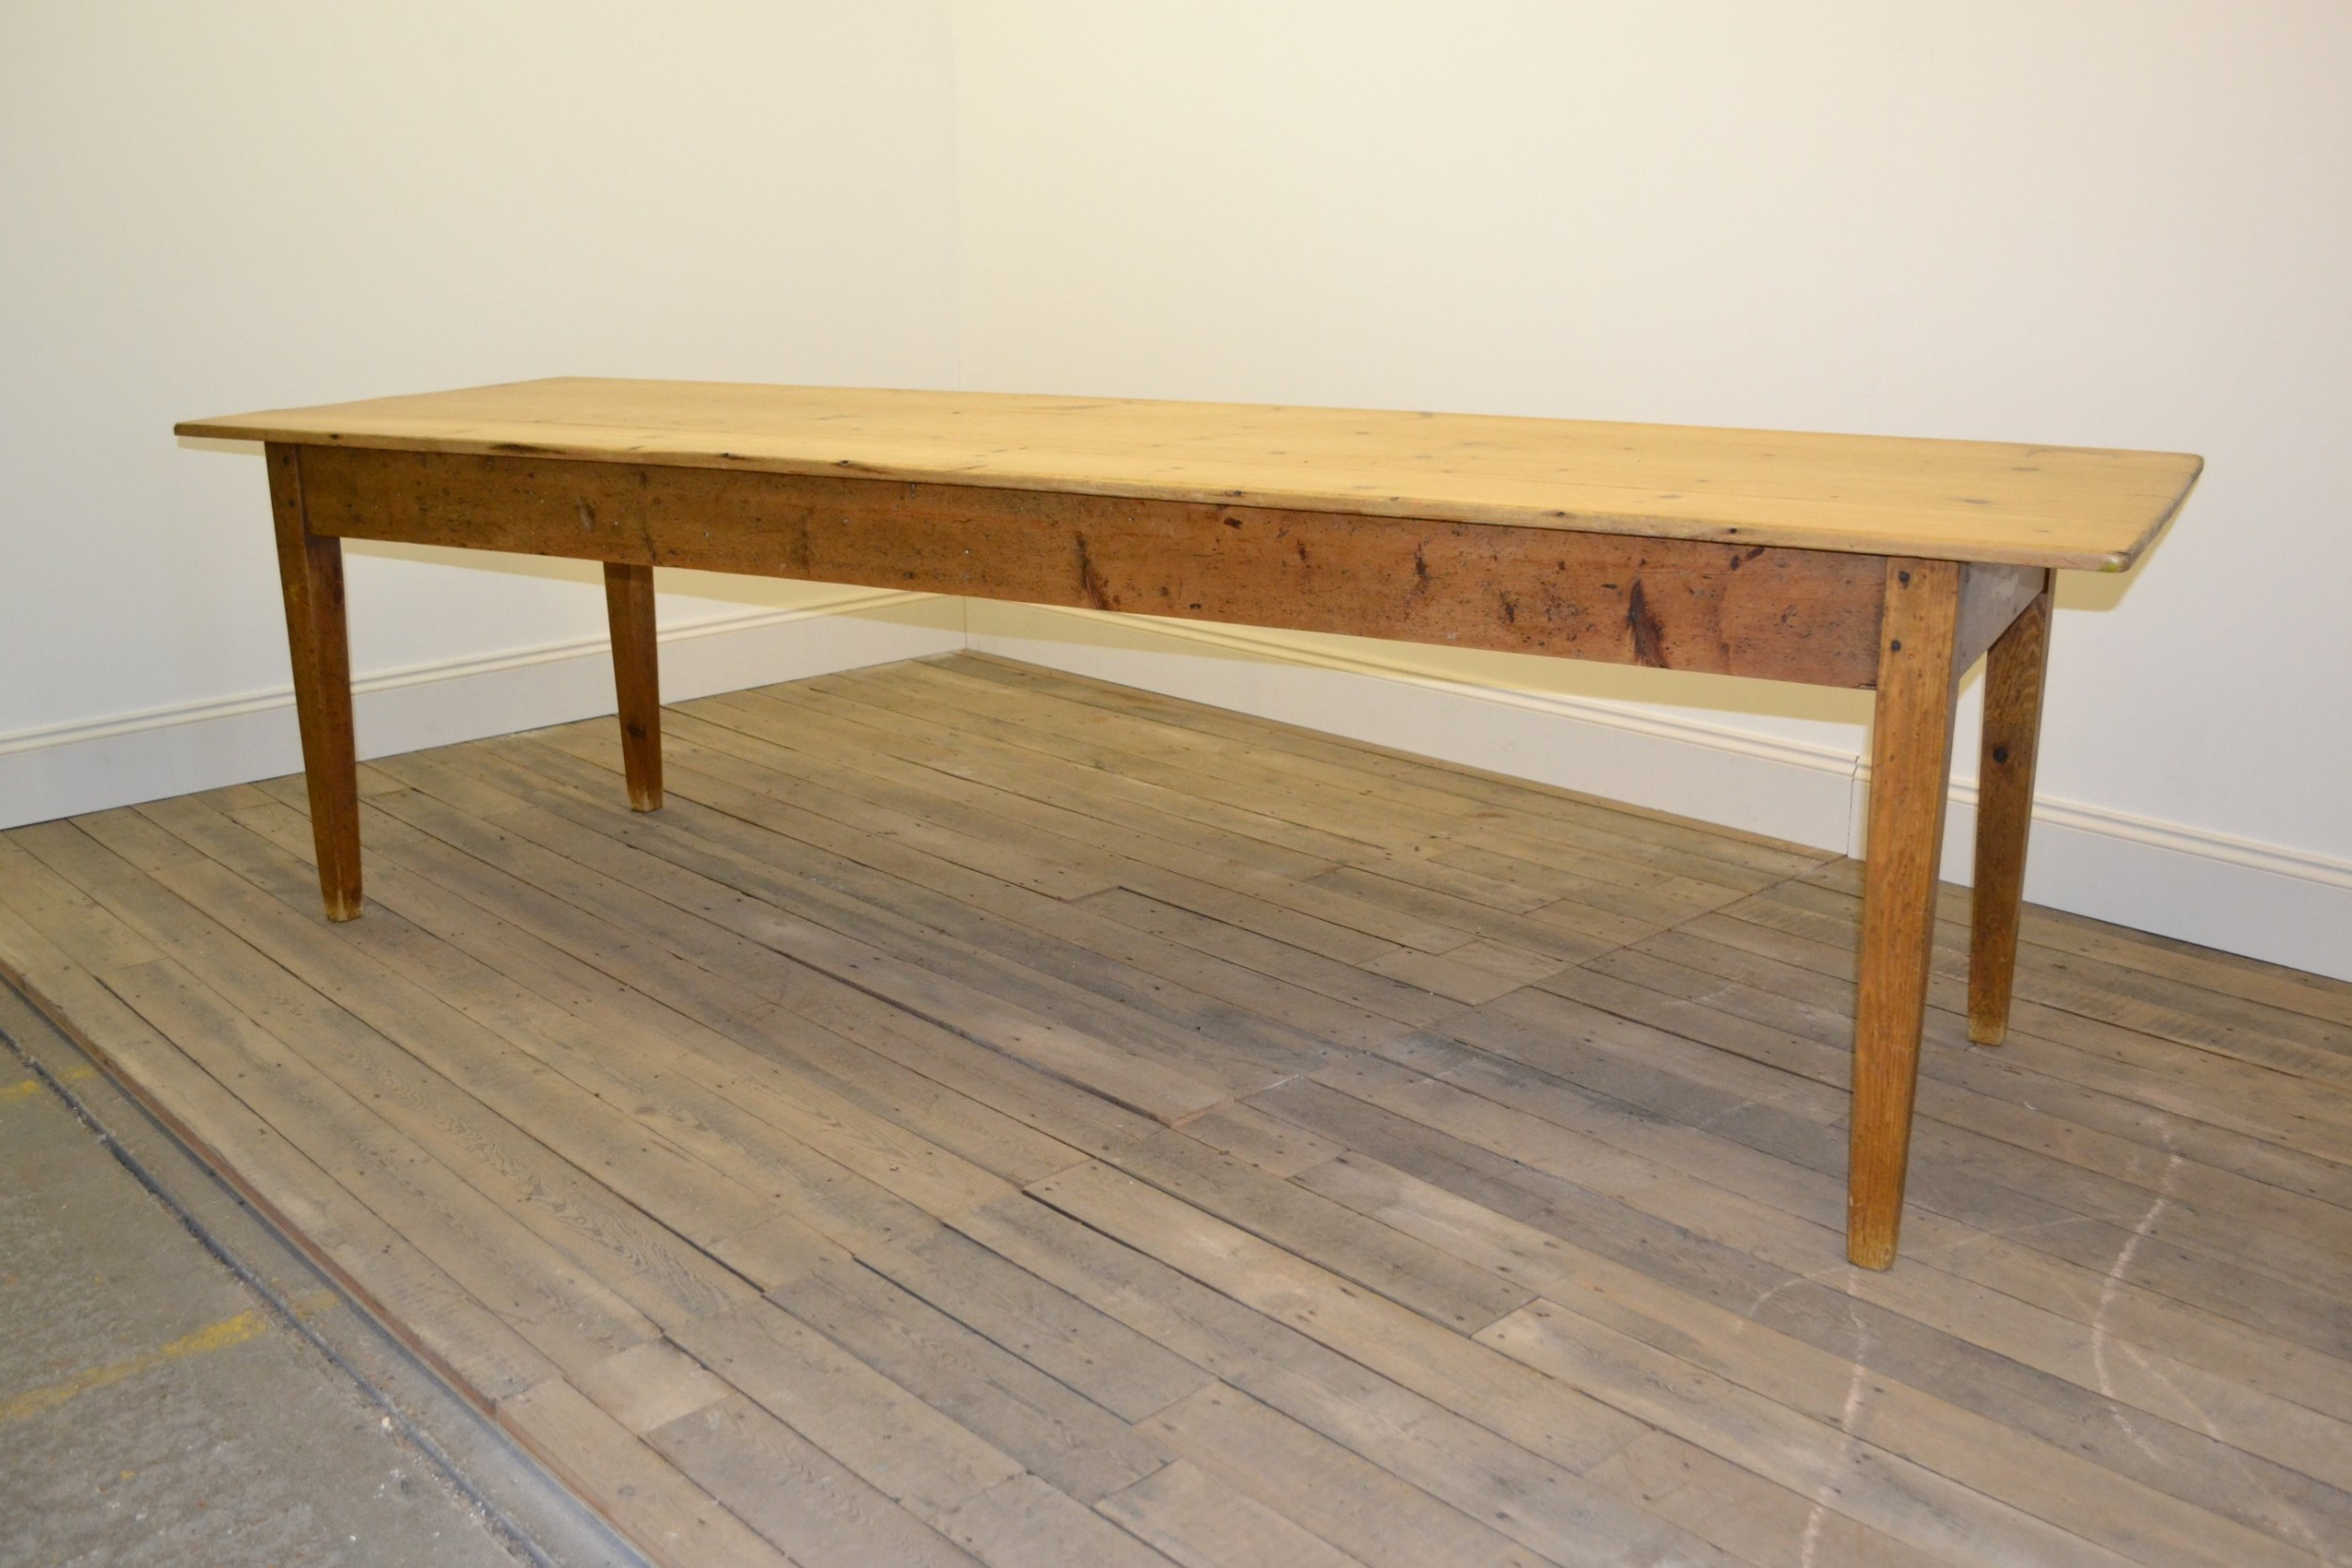 Victorian Farmhouse Table 9ft Long | 596454 | Sellingantiques co uk